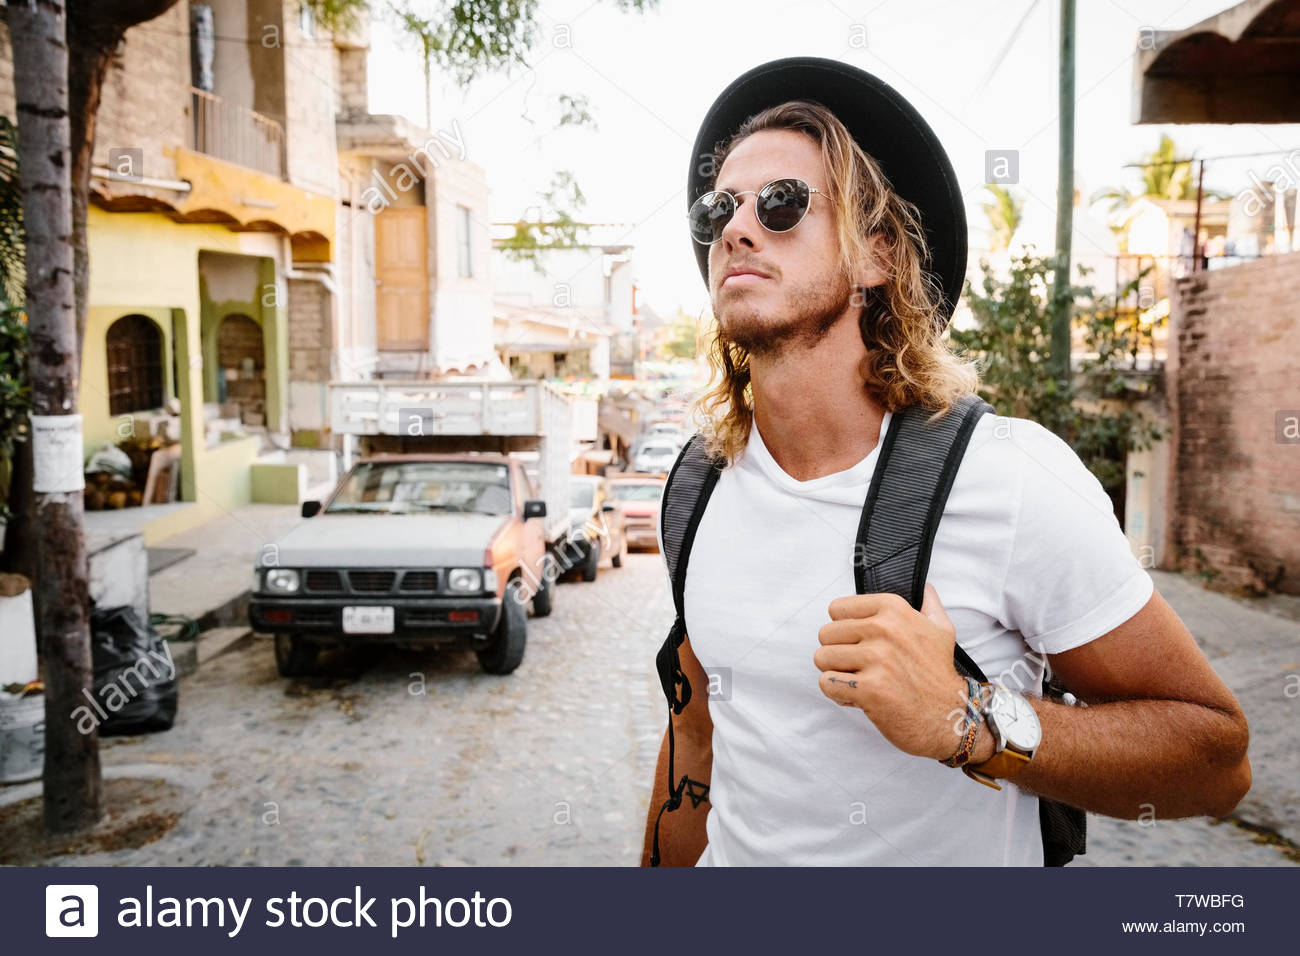 Young male tourist walking on street, Mexico - Stock Image